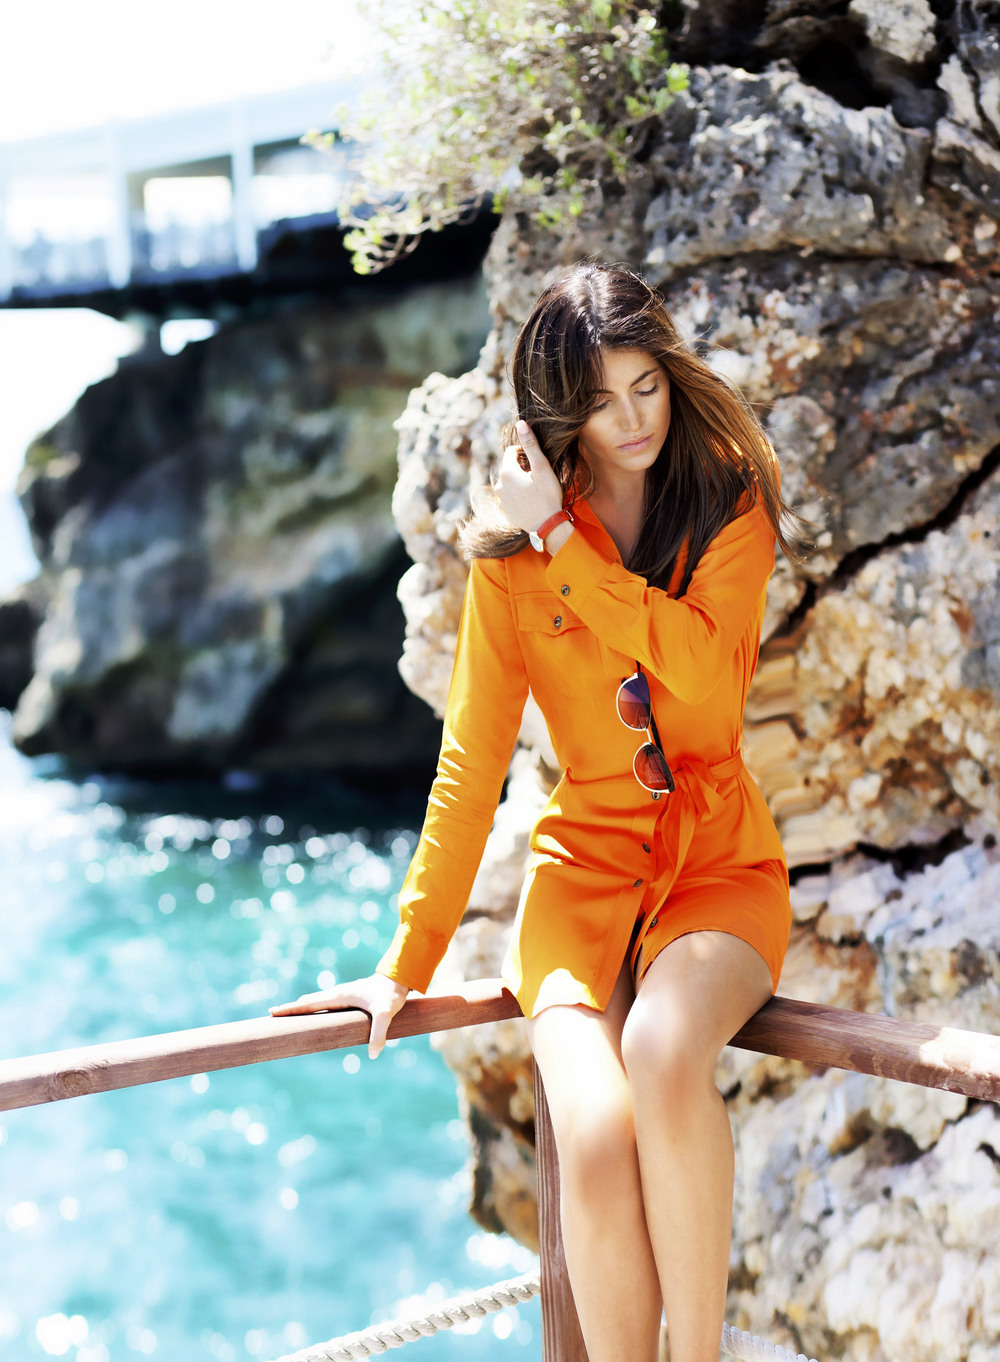 photo 3: TheVanillawoods Blogger Maureen Sophie Kragt is wearing a silk orange dress by Ralph Lauren in Monaco, For more visit the blog www.thevanillawoods.com.